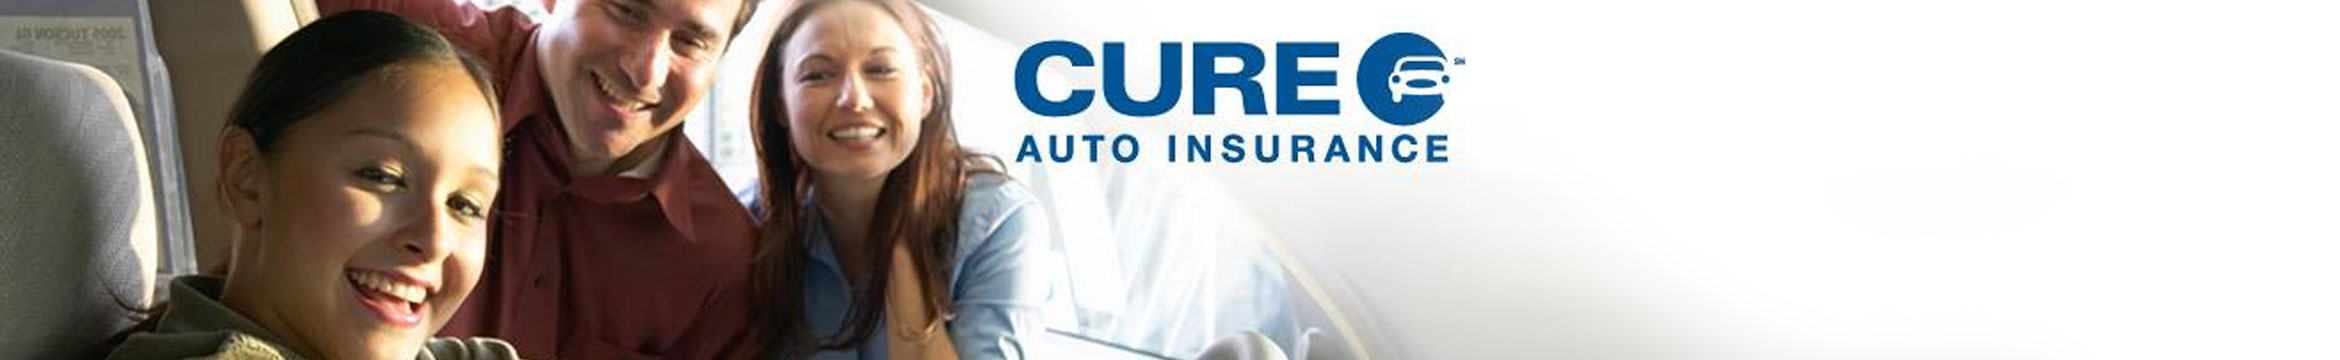 A woman in a car and two people behind her, Cure Auto Insurance -  Citizens United Reciprocal Exchange